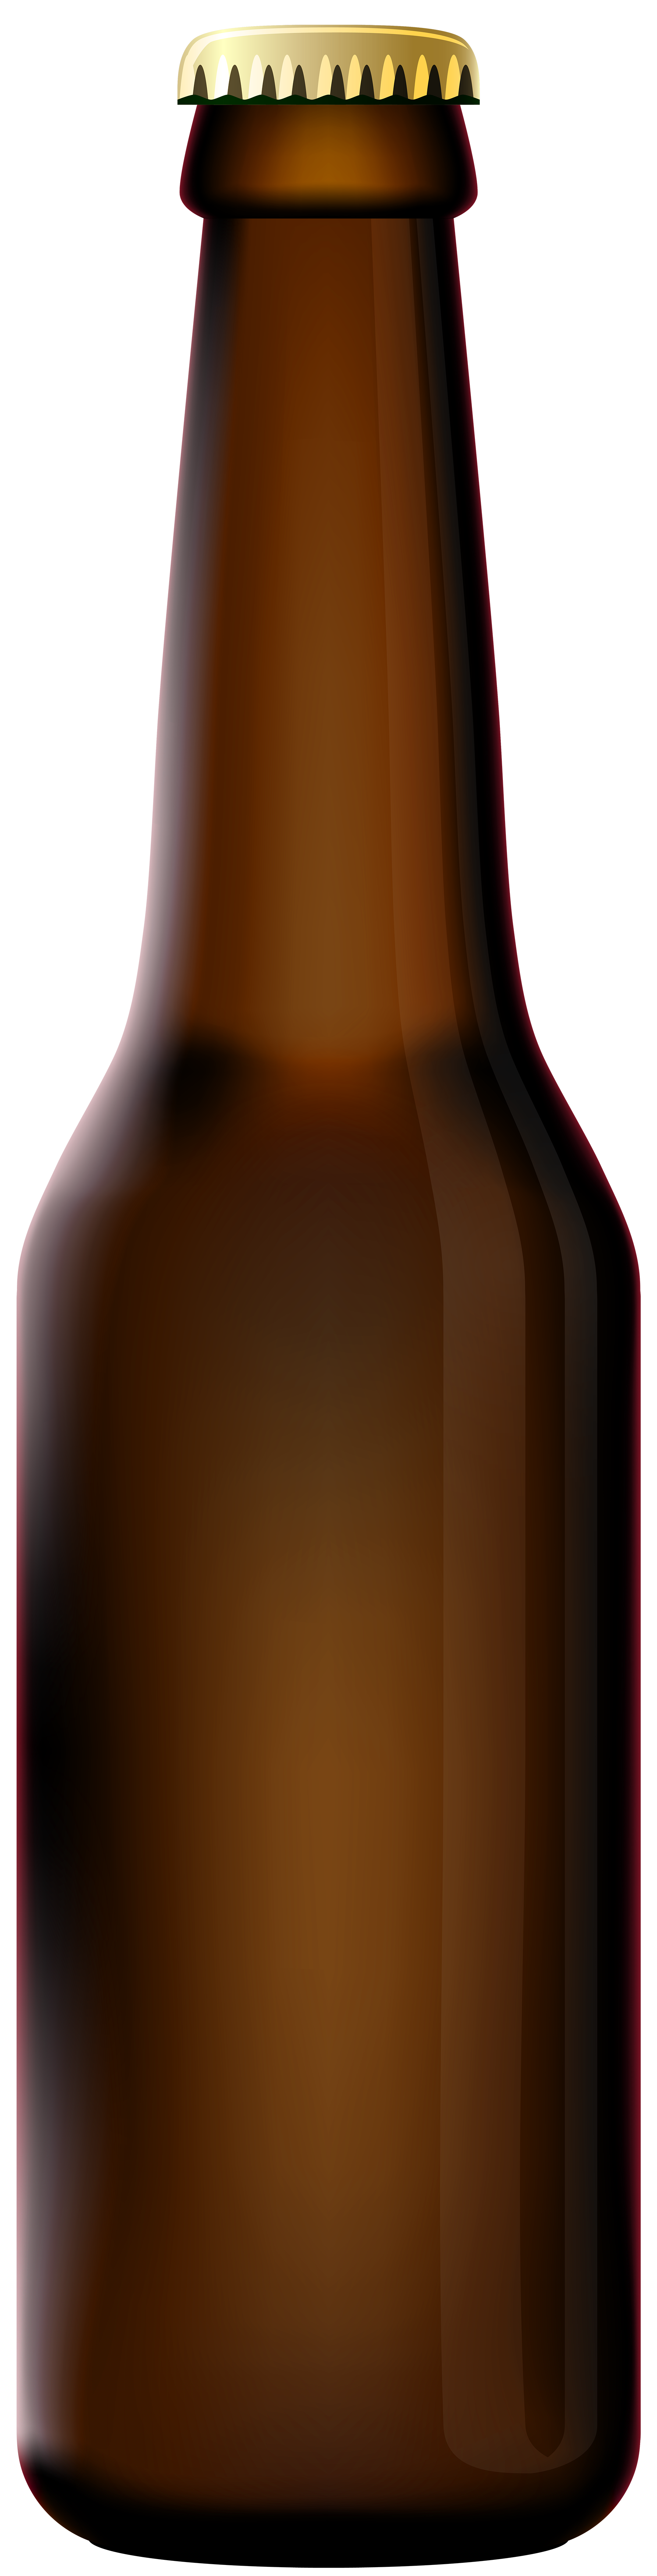 Alcohol bottle clipart png. Collection of beer